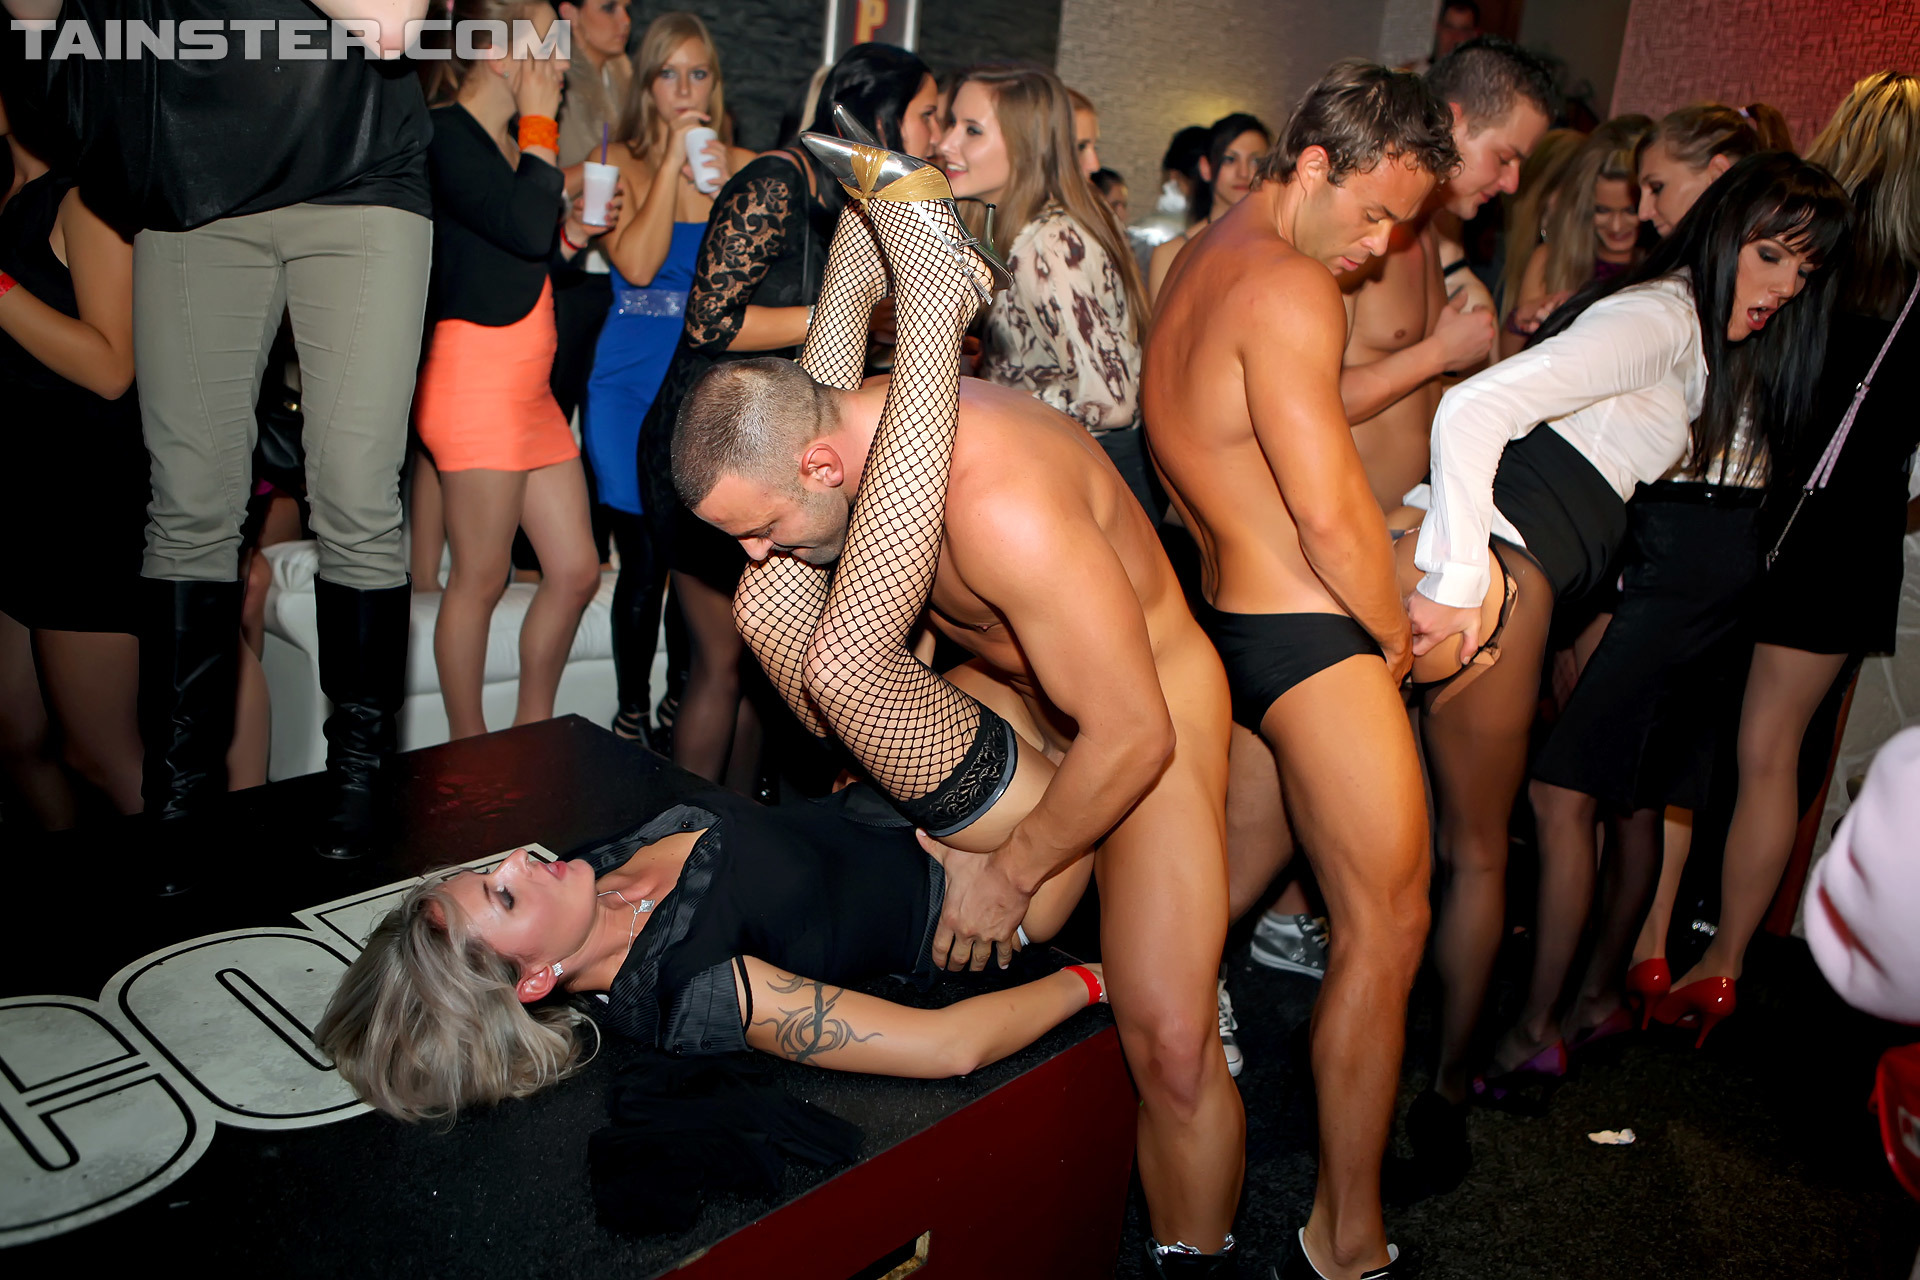 opinion creampie orgy cpo consider, that